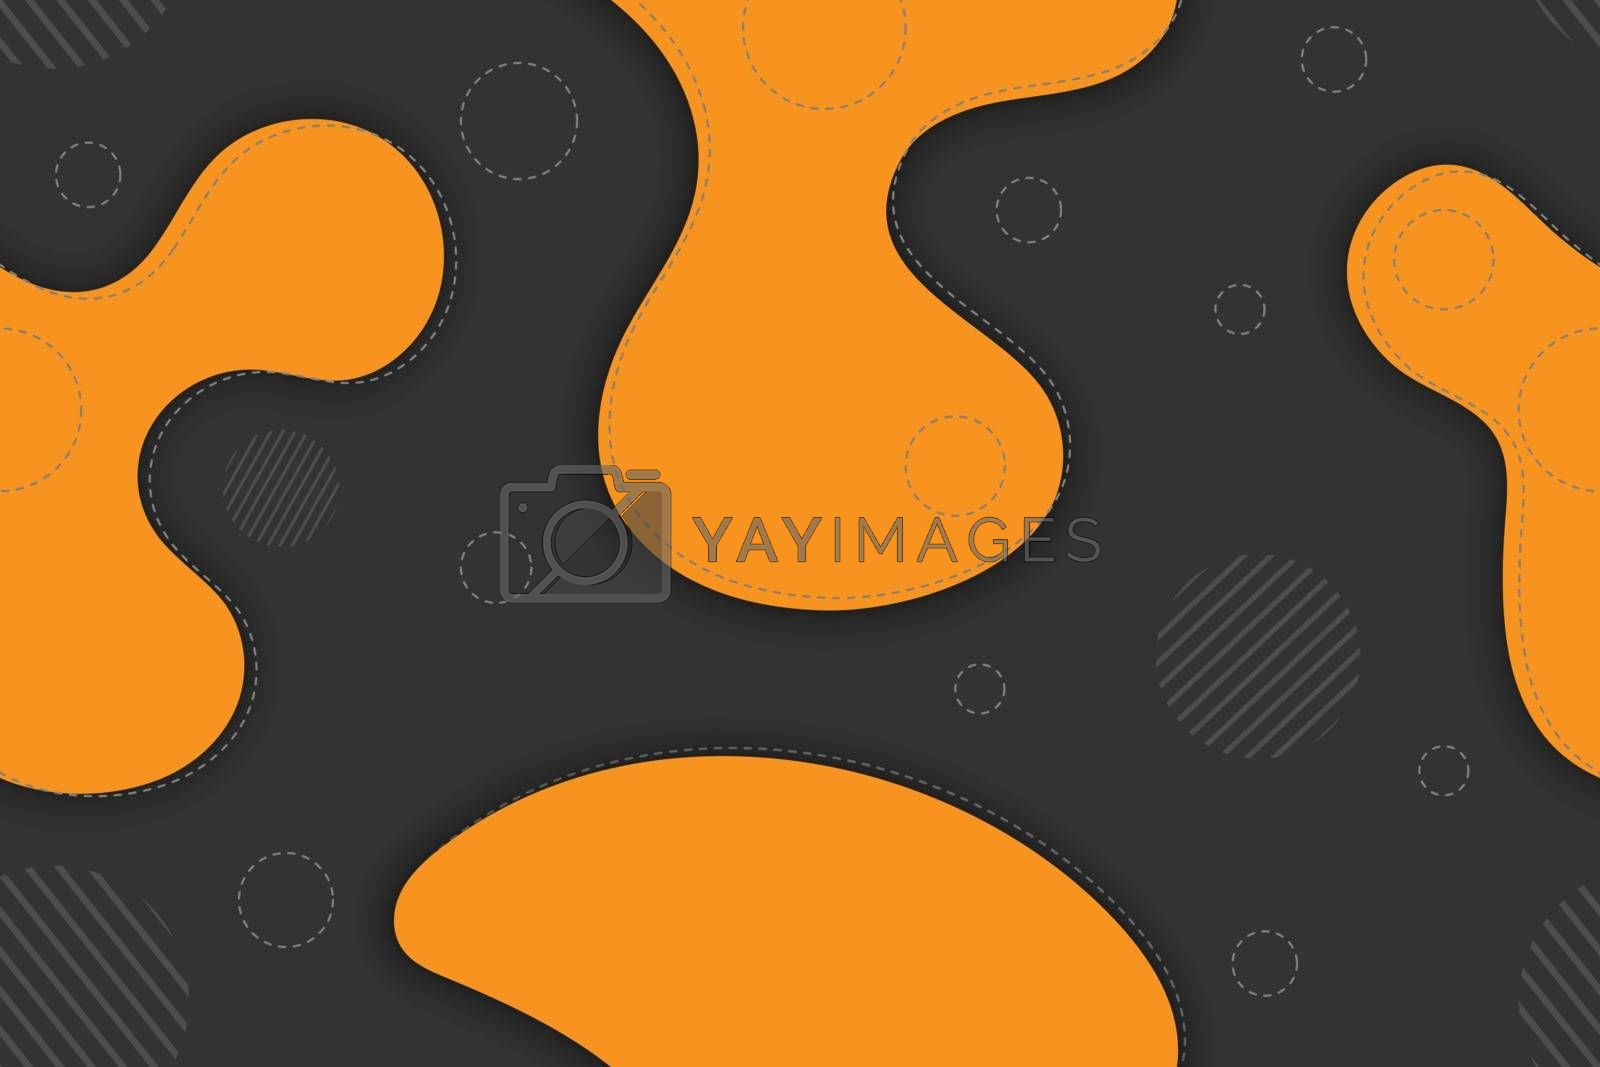 Seamless pattern of abstract shapes for simple backgrounds, textures and packaging, banners and posters.